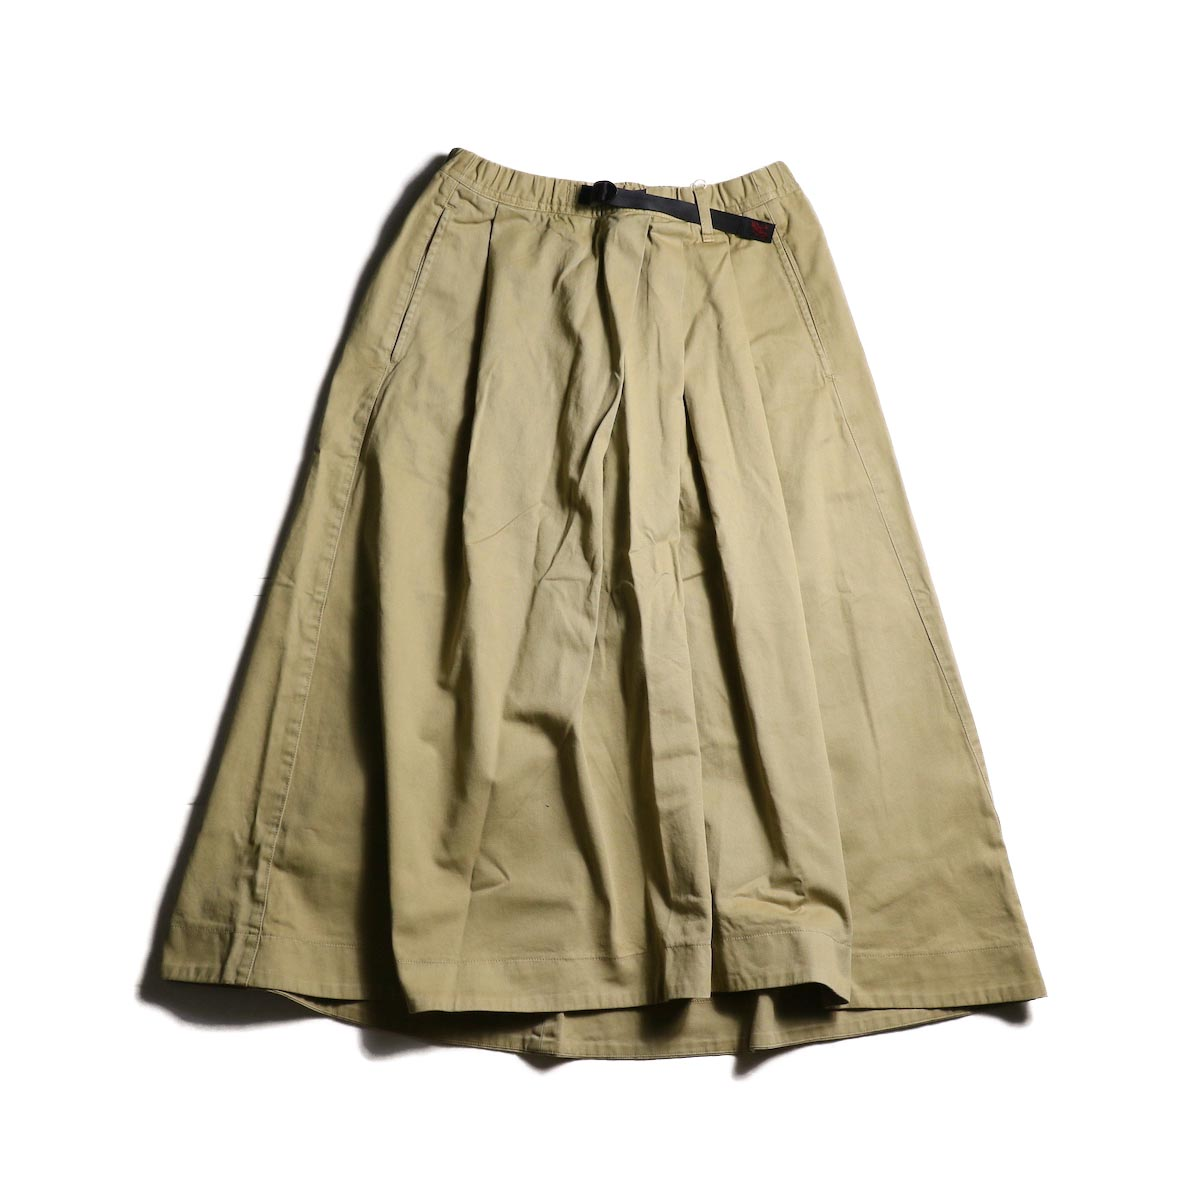 (Ladie's) GRAMICCI / Tale Cut Skirt (Chino)